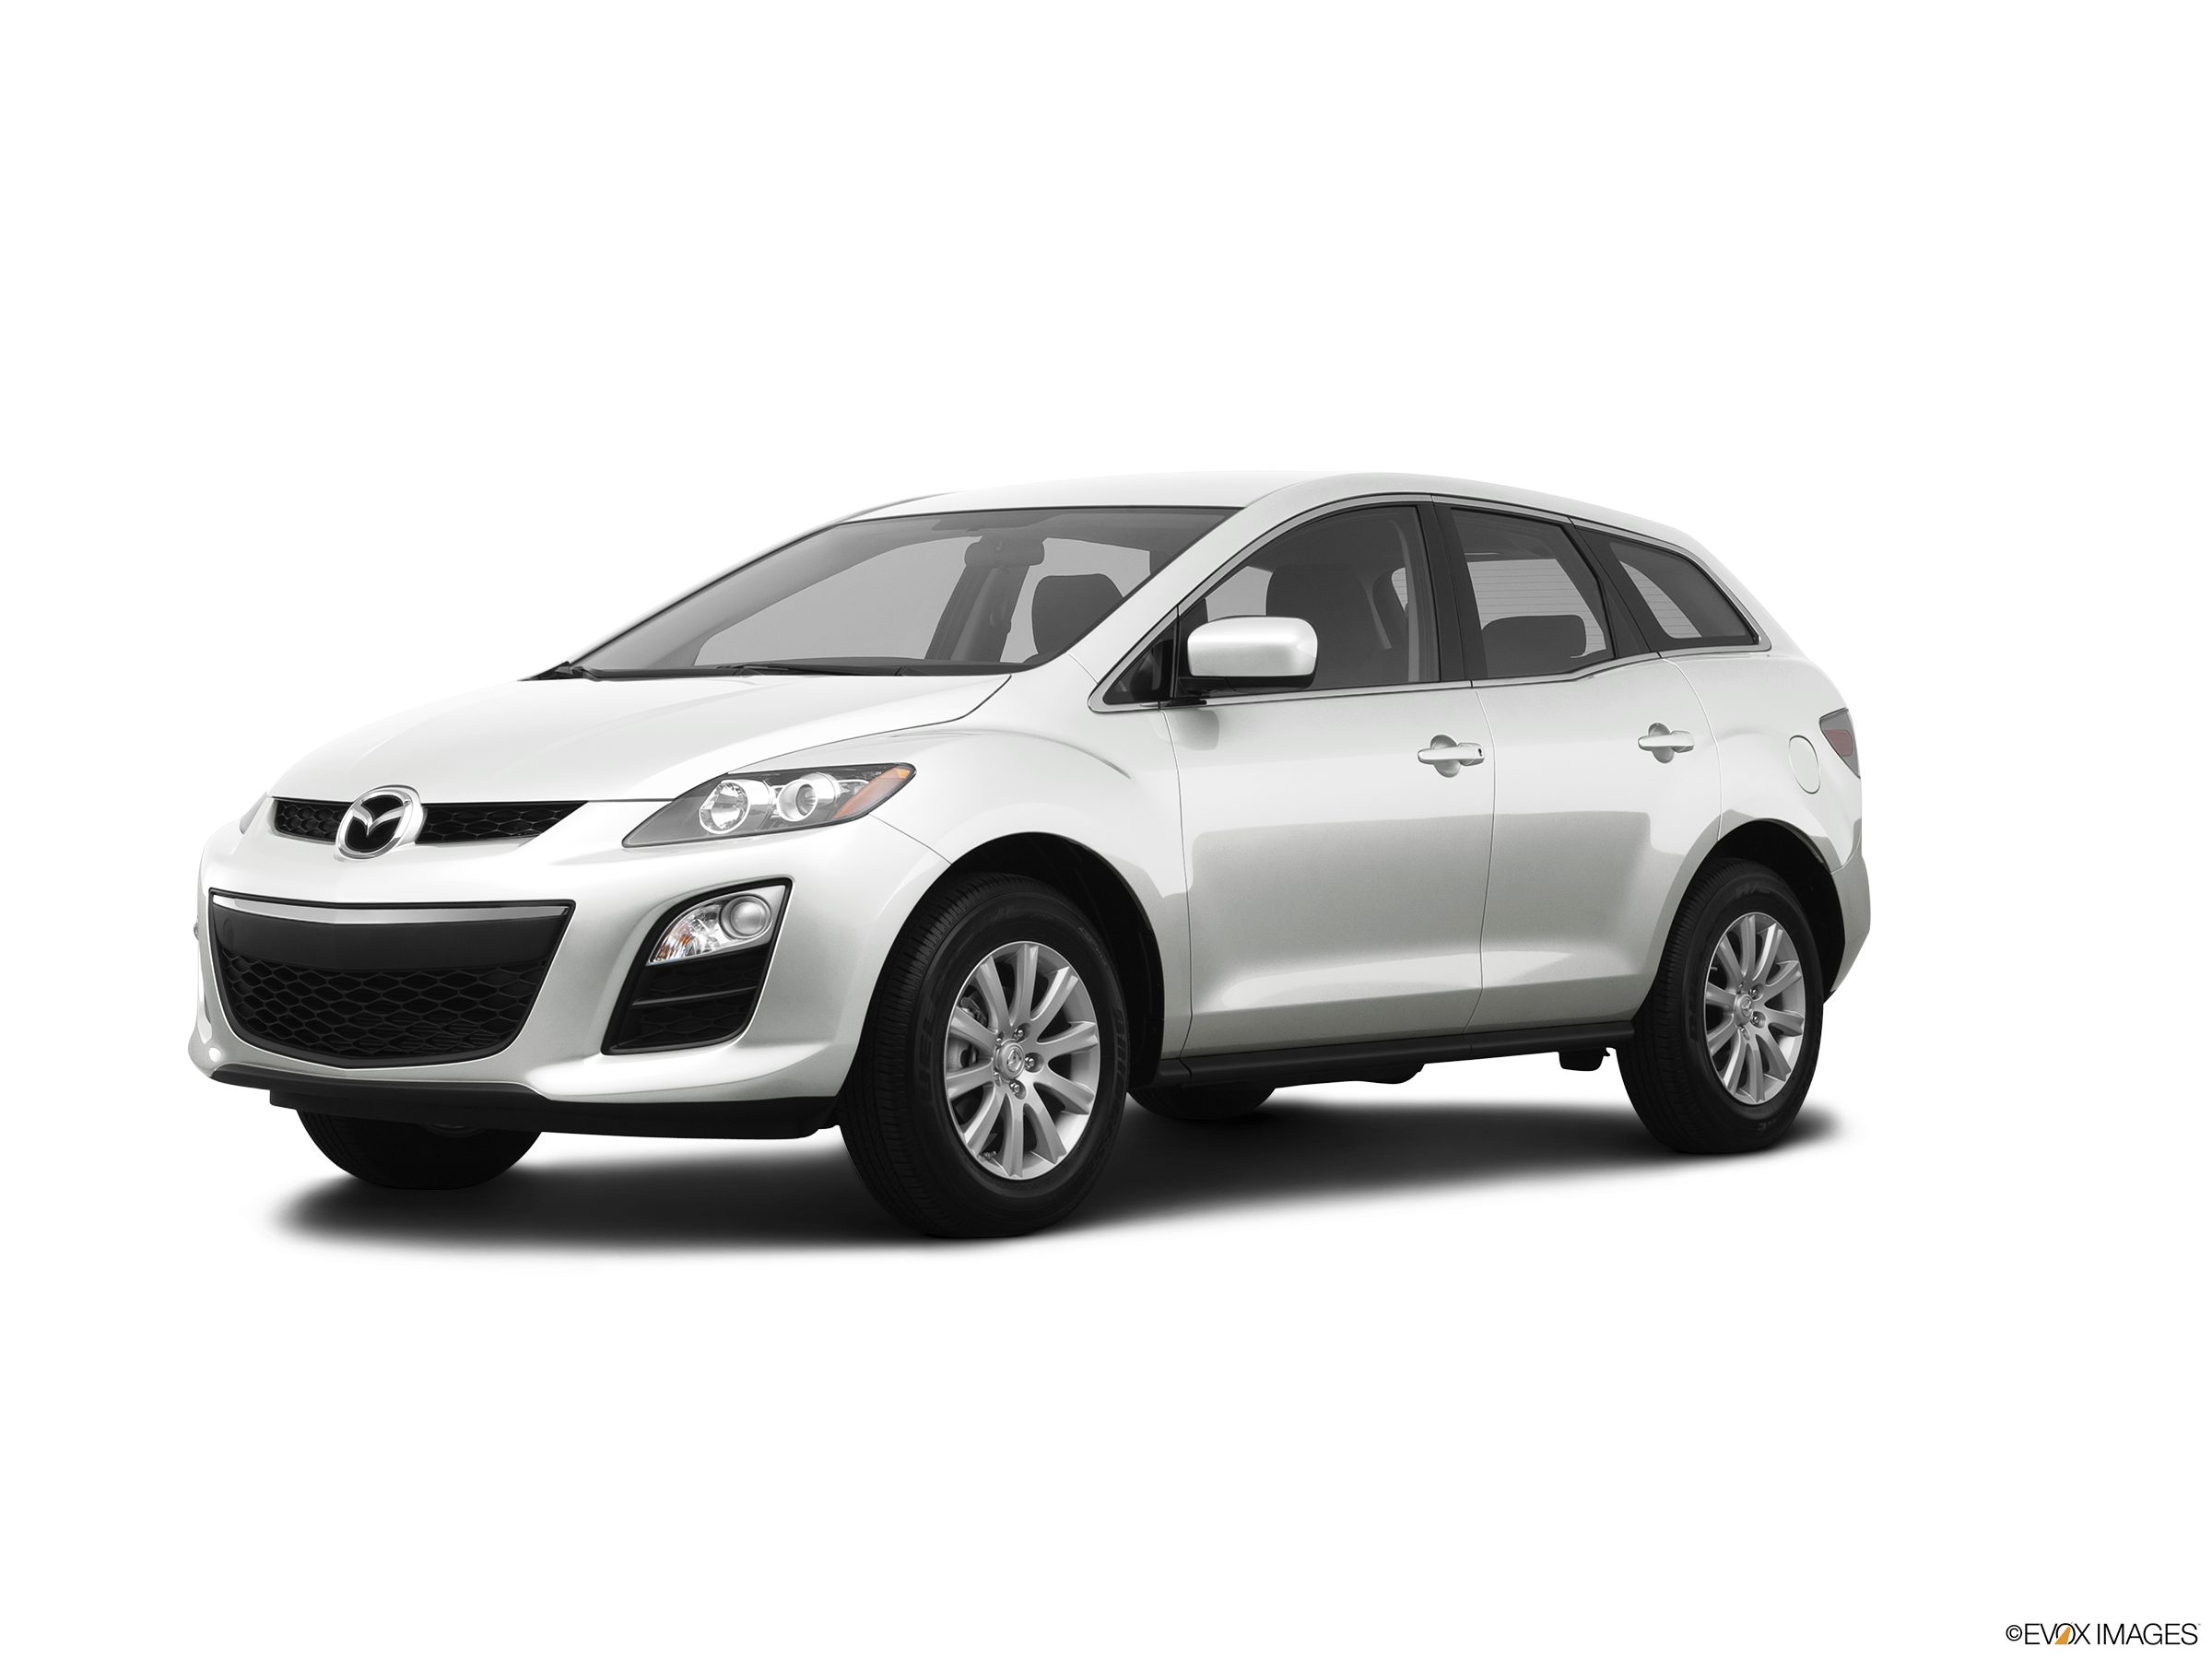 2012 Mazda Cx 7 Values Cars For Sale Kelley Blue Book